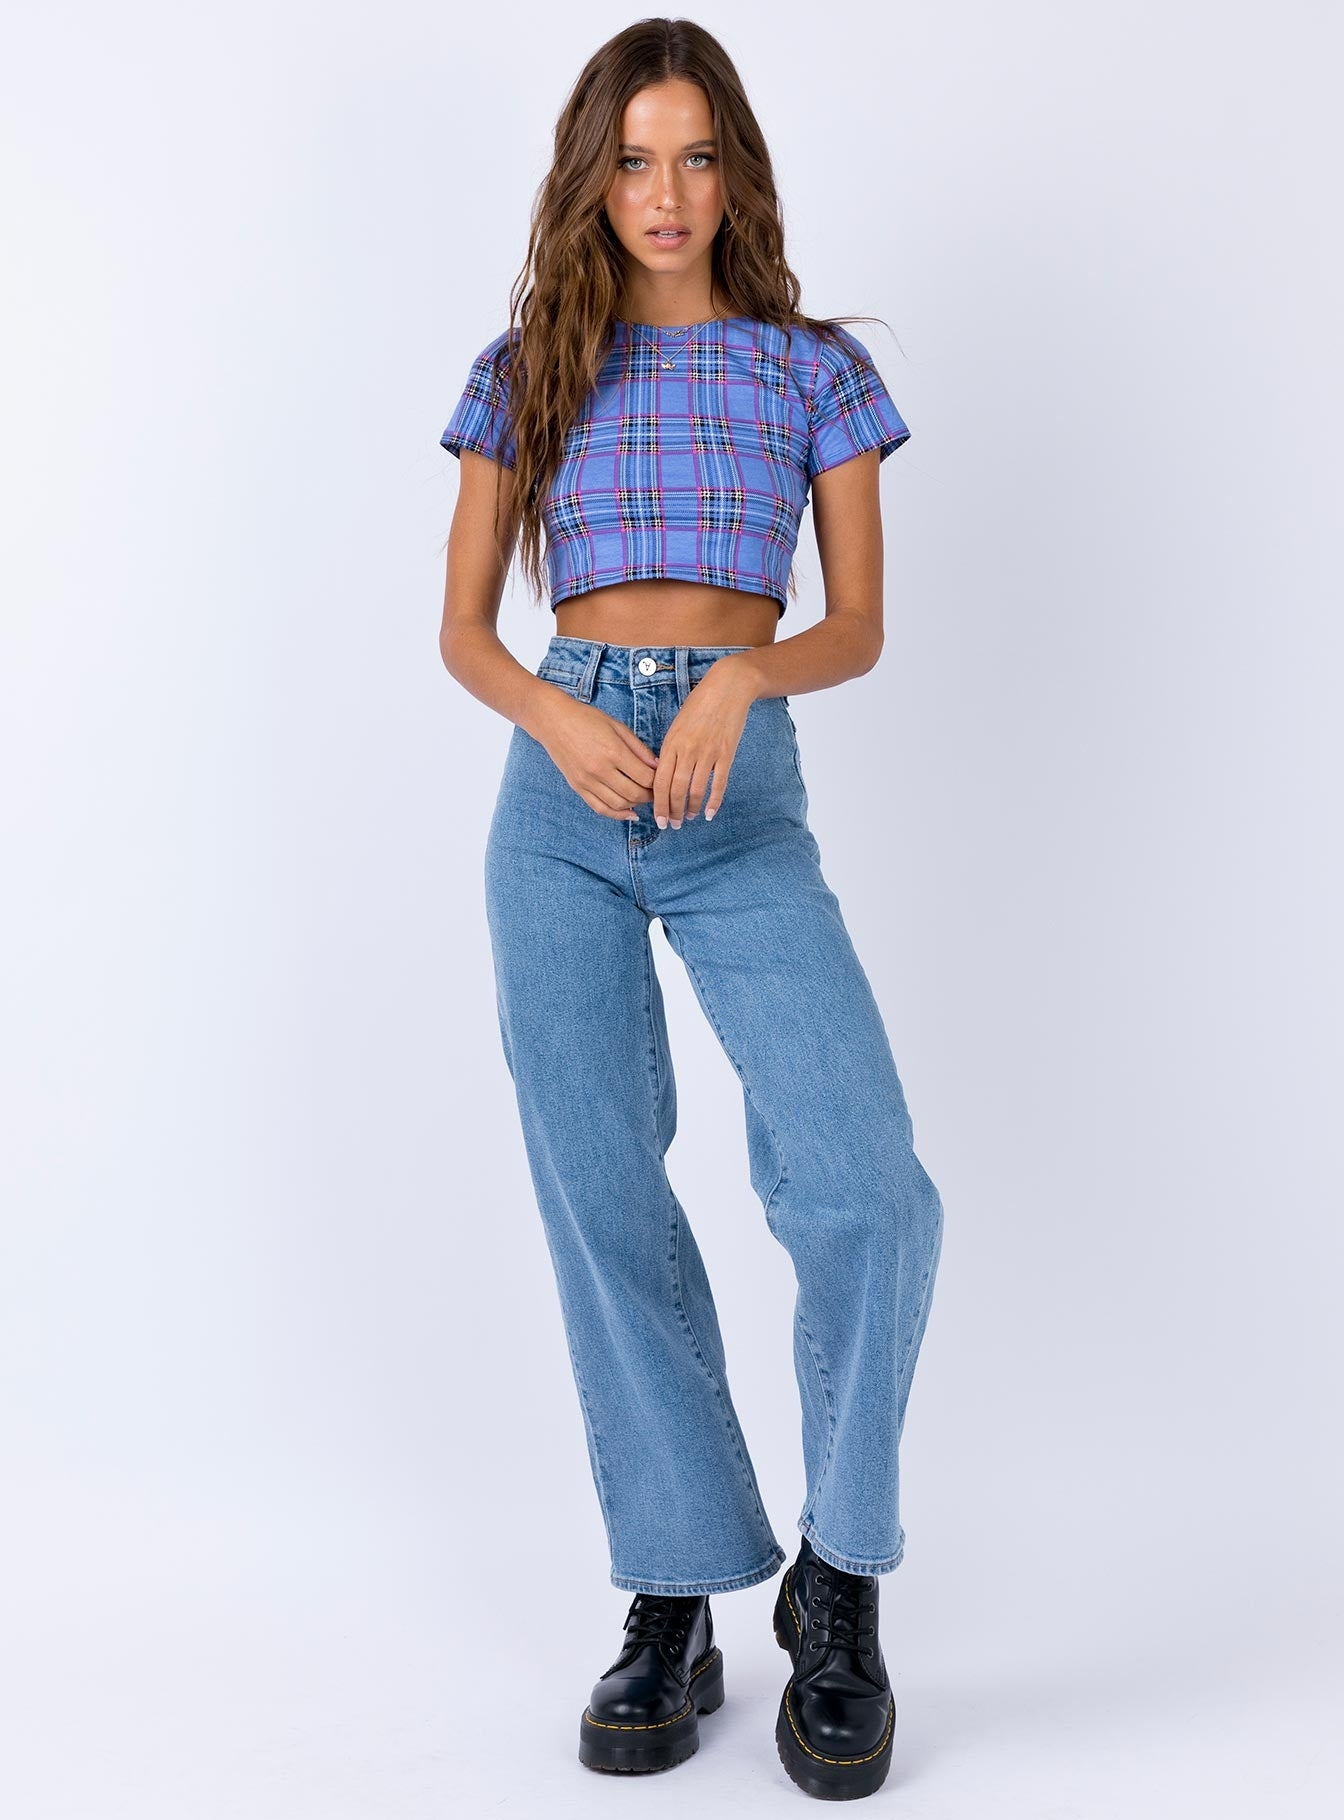 Motel Tindy Crop Top 90's Check Blue Pink